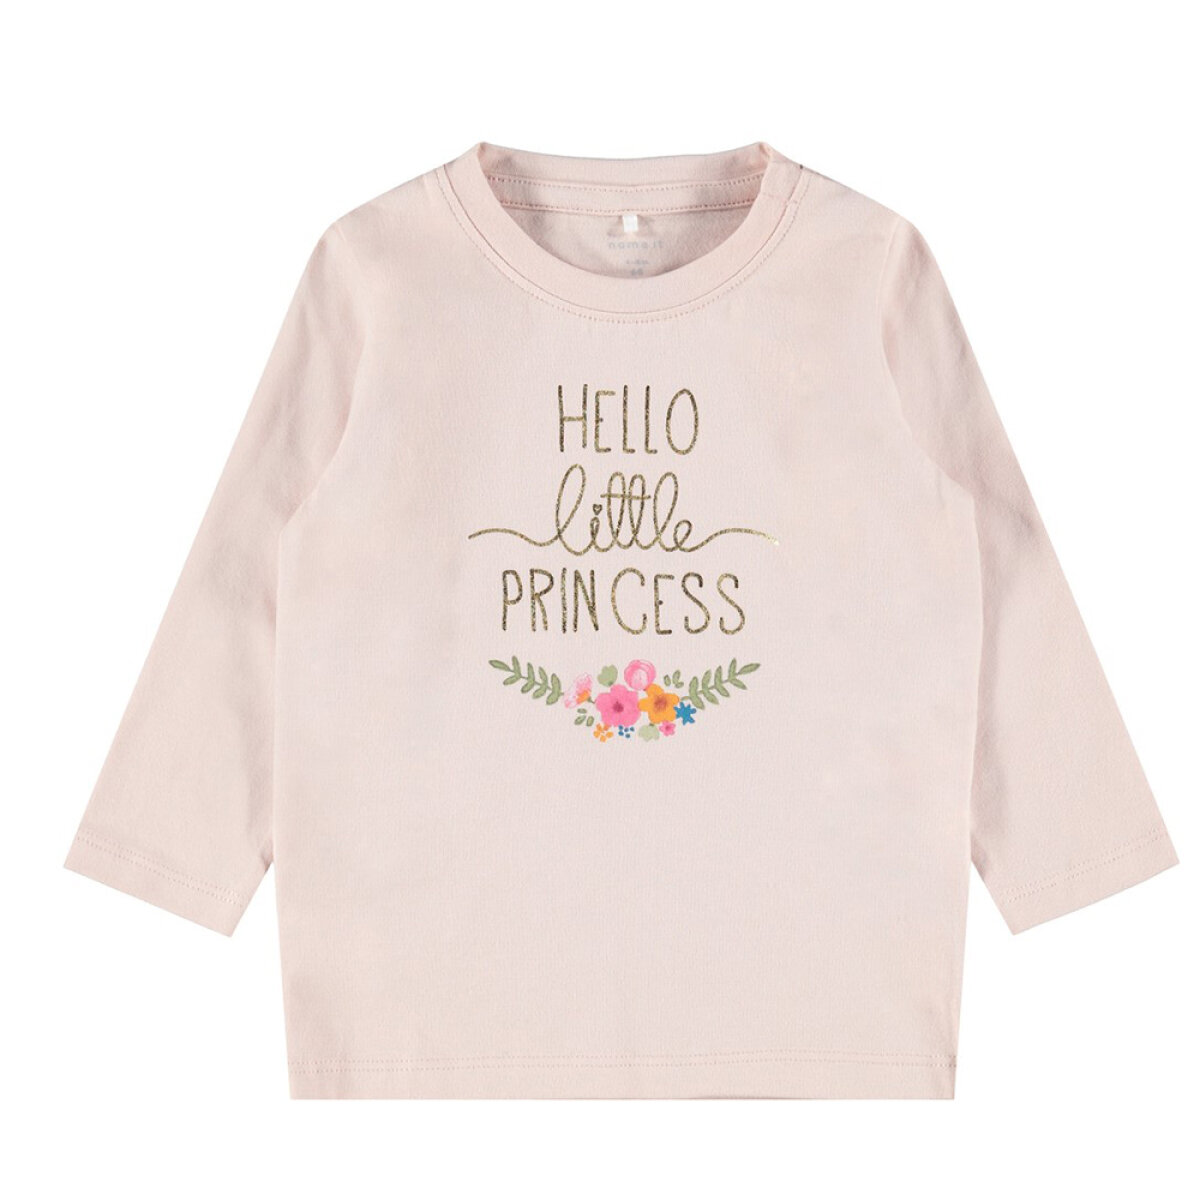 Name It meisjes shirt 13186377 roze